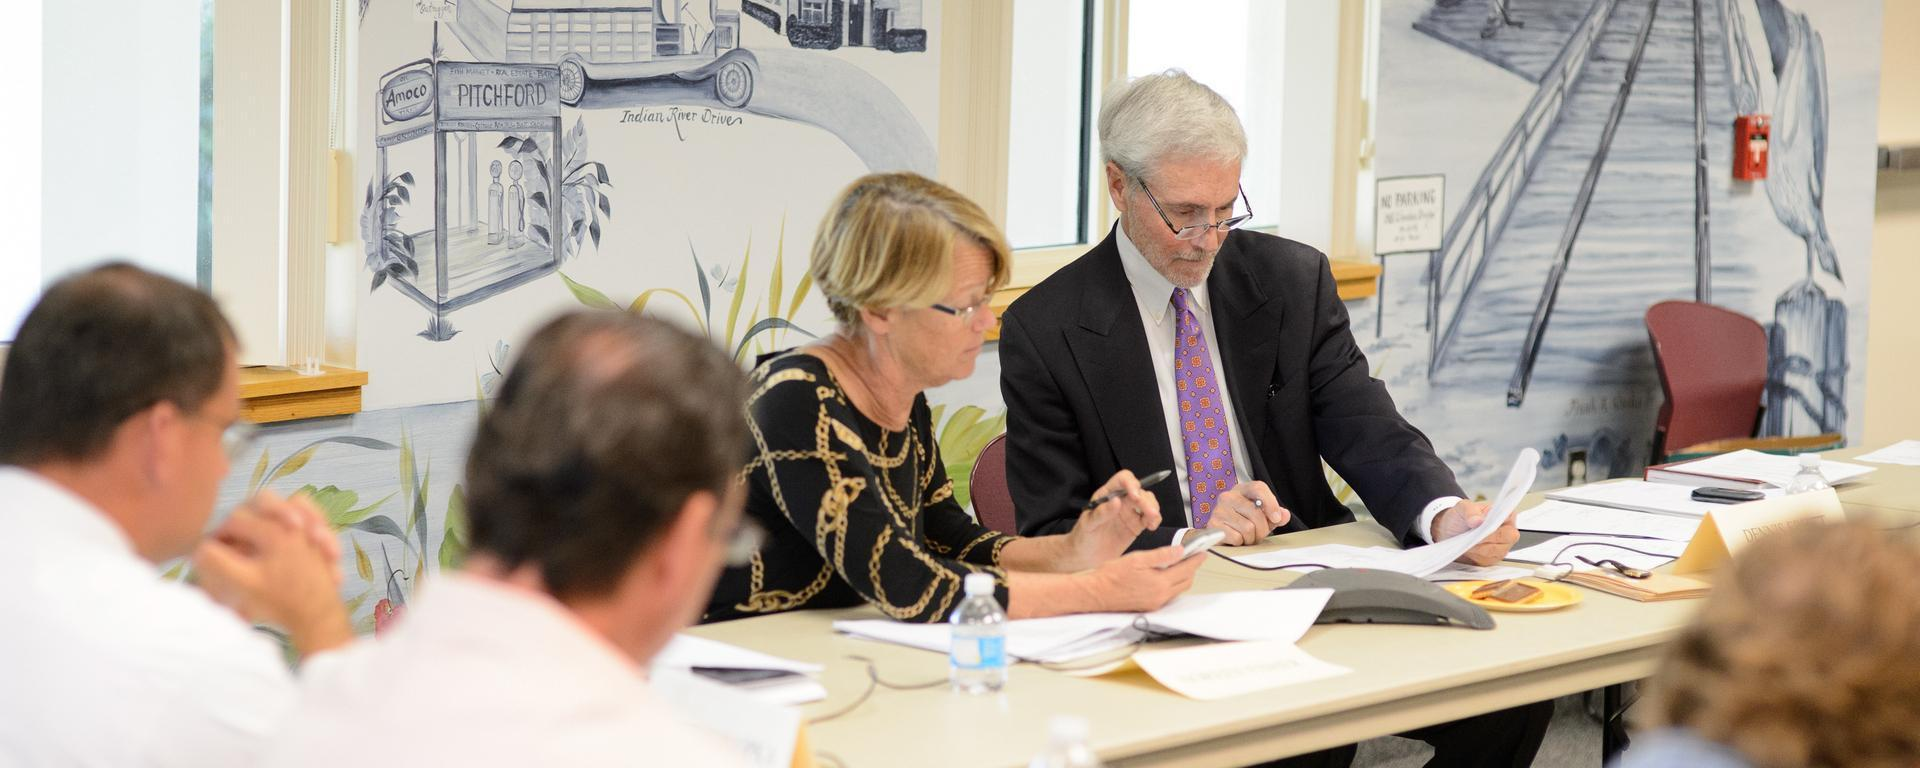 two people at a business meeting reviewing a report